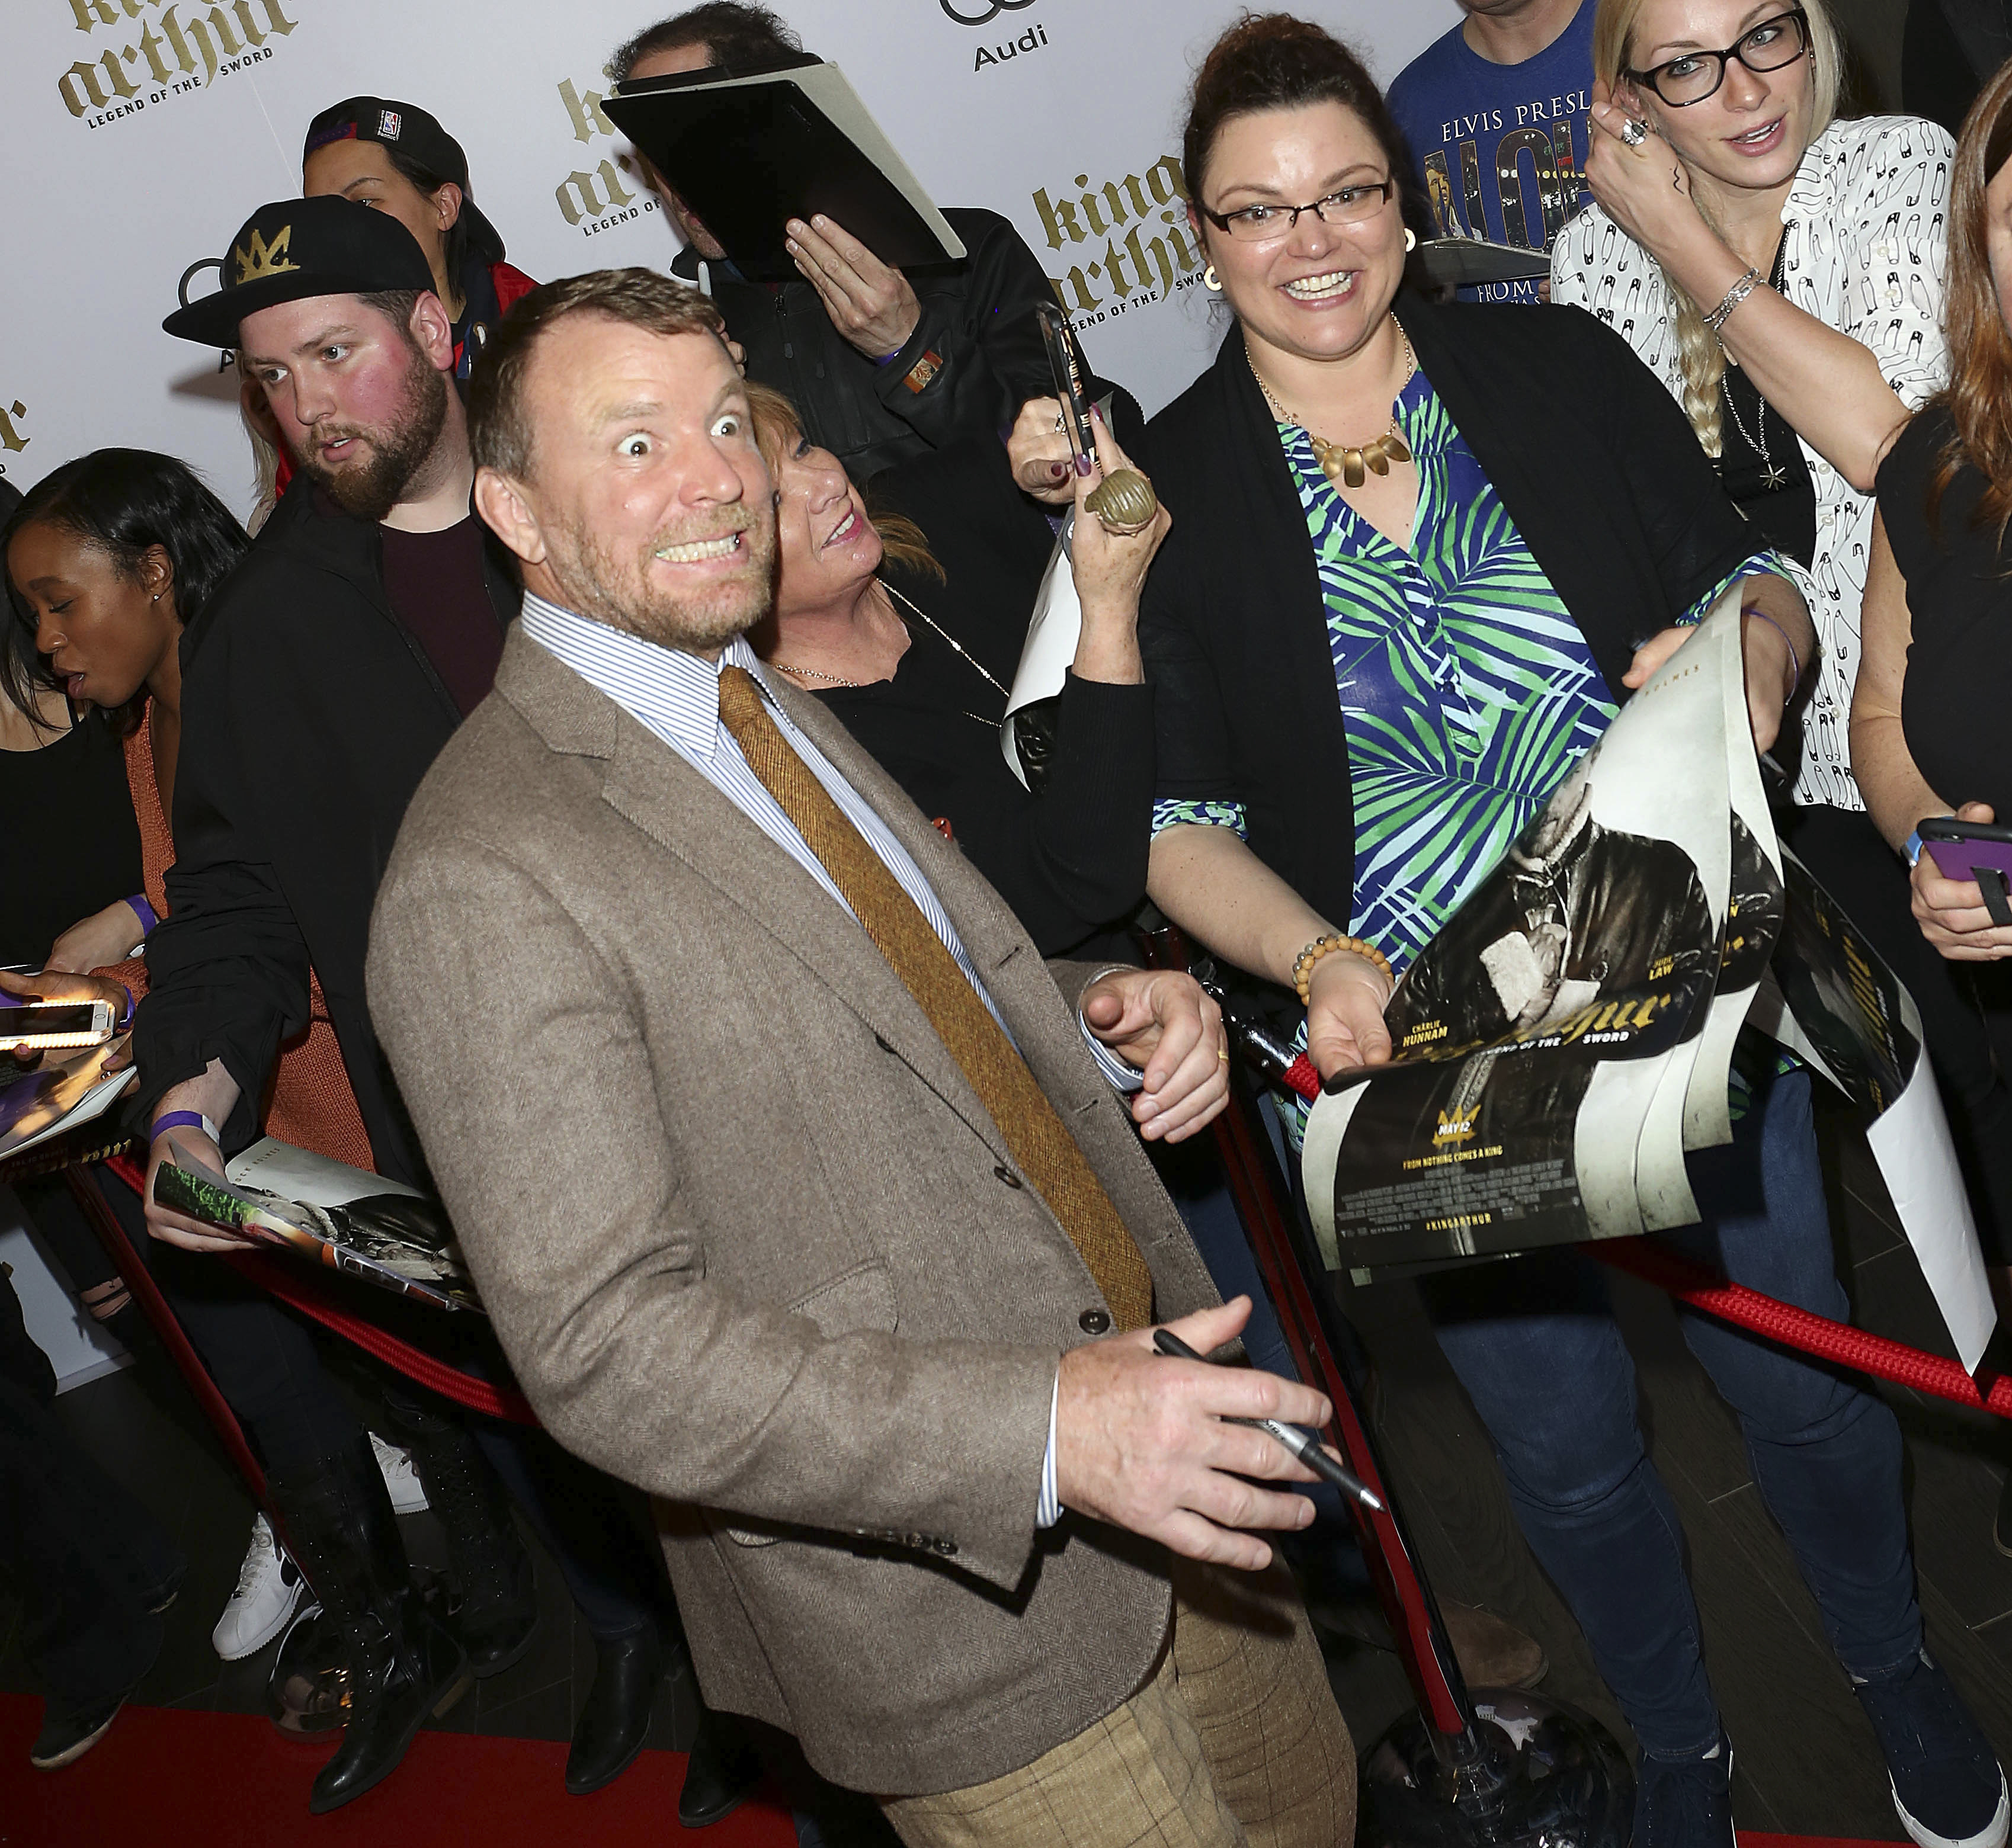 """Guy Ritchie attends the """"King Arthur: Legend of the Sword"""" premiere in Toronto on May 2, 2017."""